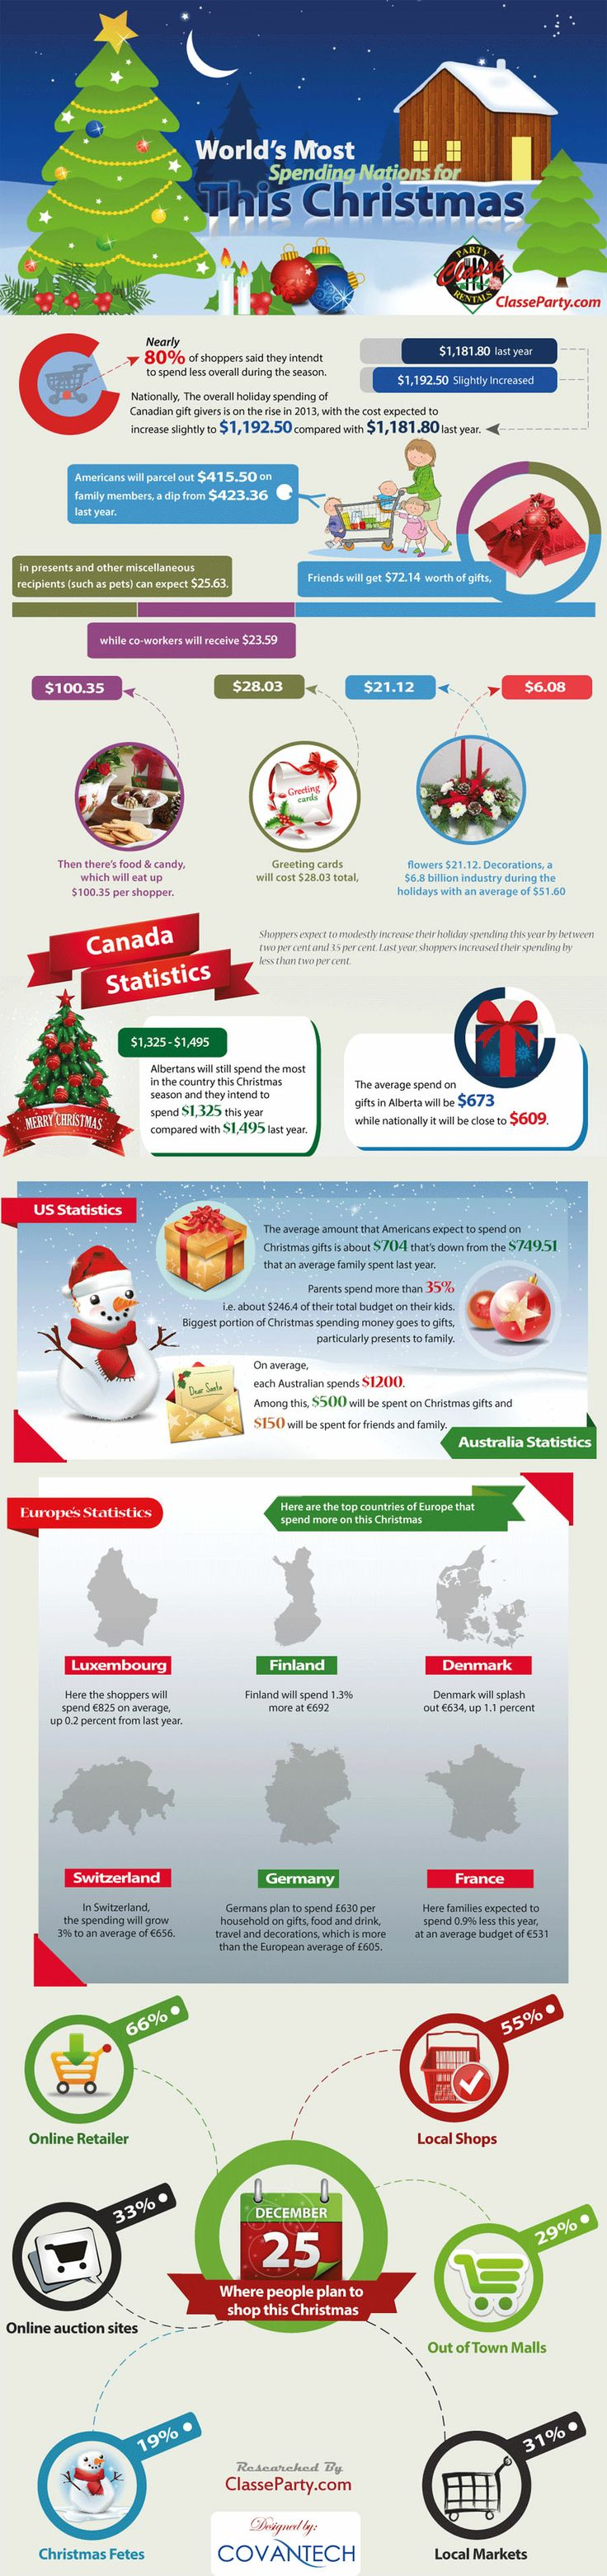 Here is the Christmas economics about which nations spend the most and what they spend. Canada is the top nation of the world that spends most this year also